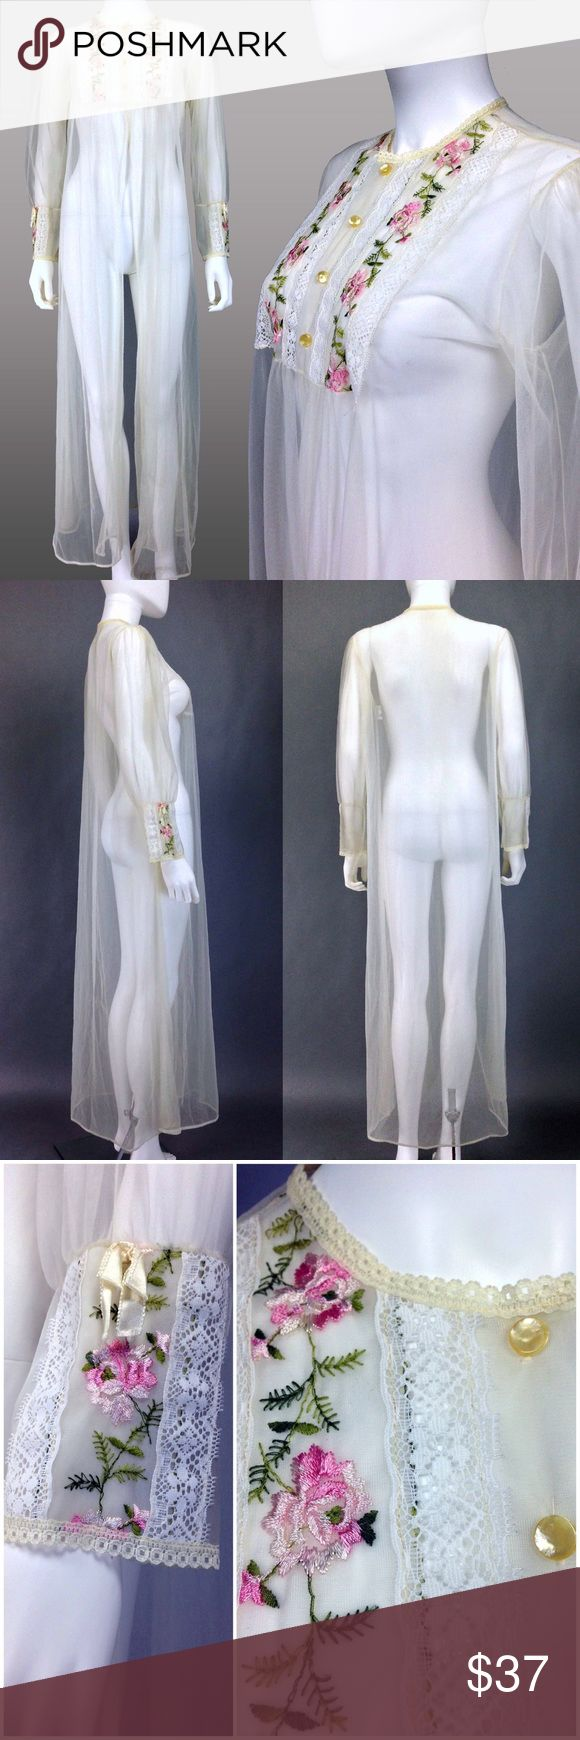 """VINTAGE LINGERIE 70s Peignoir Robe SHEER Floral Awesome vintage 60s-70s peignoir robe.   •Sheer white nylon •Floral embroidery & white lace trim on bib & cuffs •Mother of pearl buttons •Blue union label  CONDITION: Good vtg condition w/ 1 long thin run on front from under bib to hem; a few dings/snags here & there-see last pic. Flaws aren't very noticeable due to the sheer fabric.  MEASUREMENTS: •Shoulders:14"""" •Bust:38"""" •Waist:free •Hips:free •Sleeve:22"""" •Length:51""""  ☑️Top Rated Seller…"""